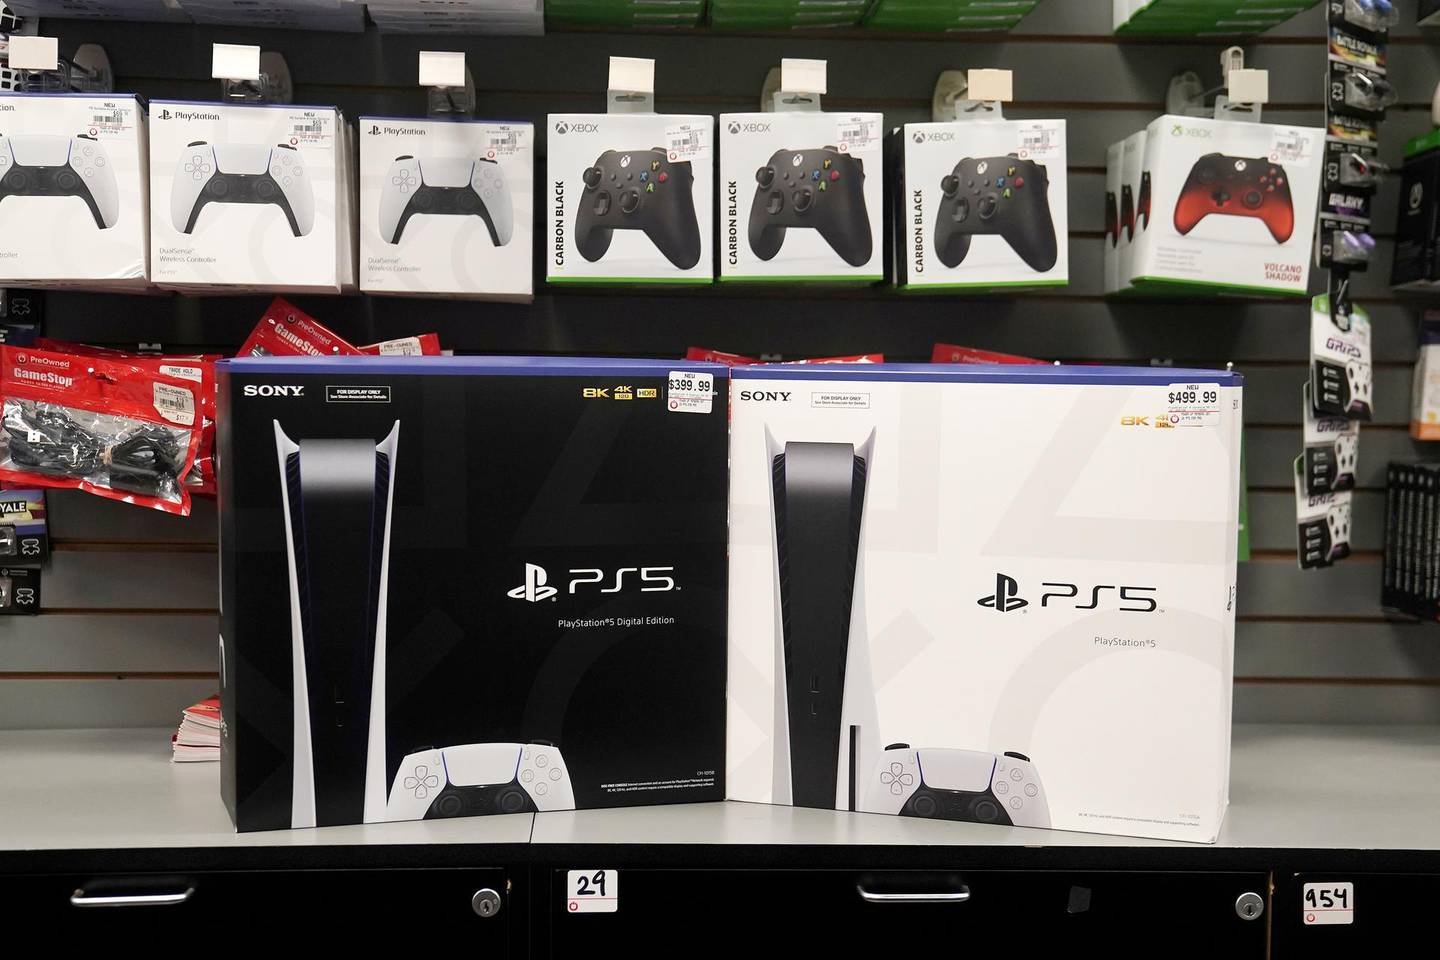 Inside a GameStop store Sony PS5 gaming consoles are pictured in the Manhattan borough of New York City, New York, U.S., November 12, 2020. REUTERS/Carlo Allegri